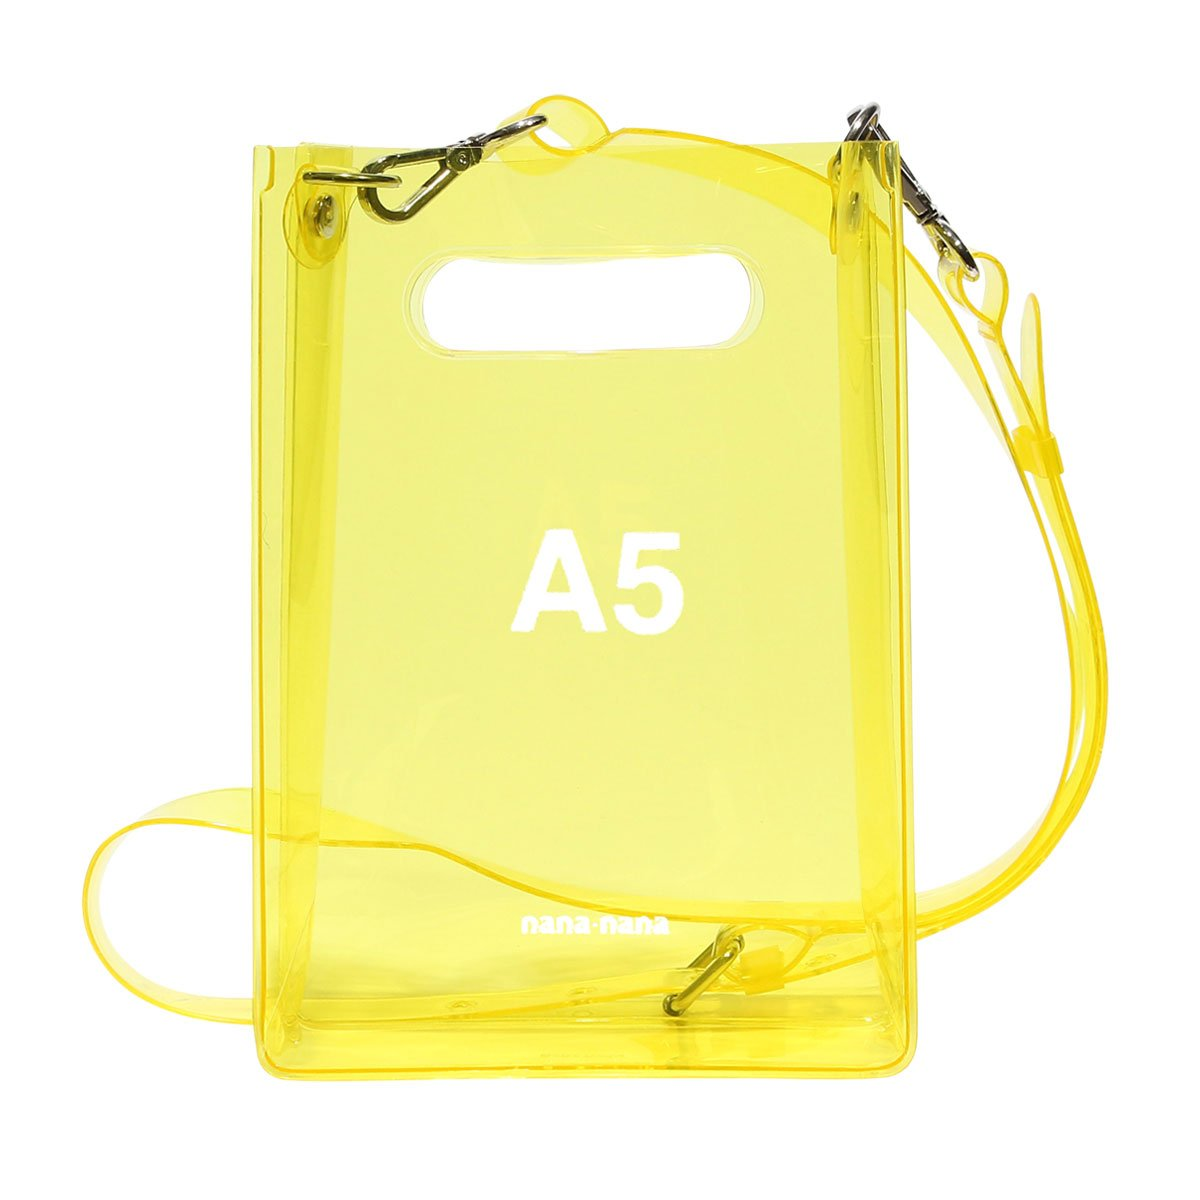 A5 BAG - YELLOW